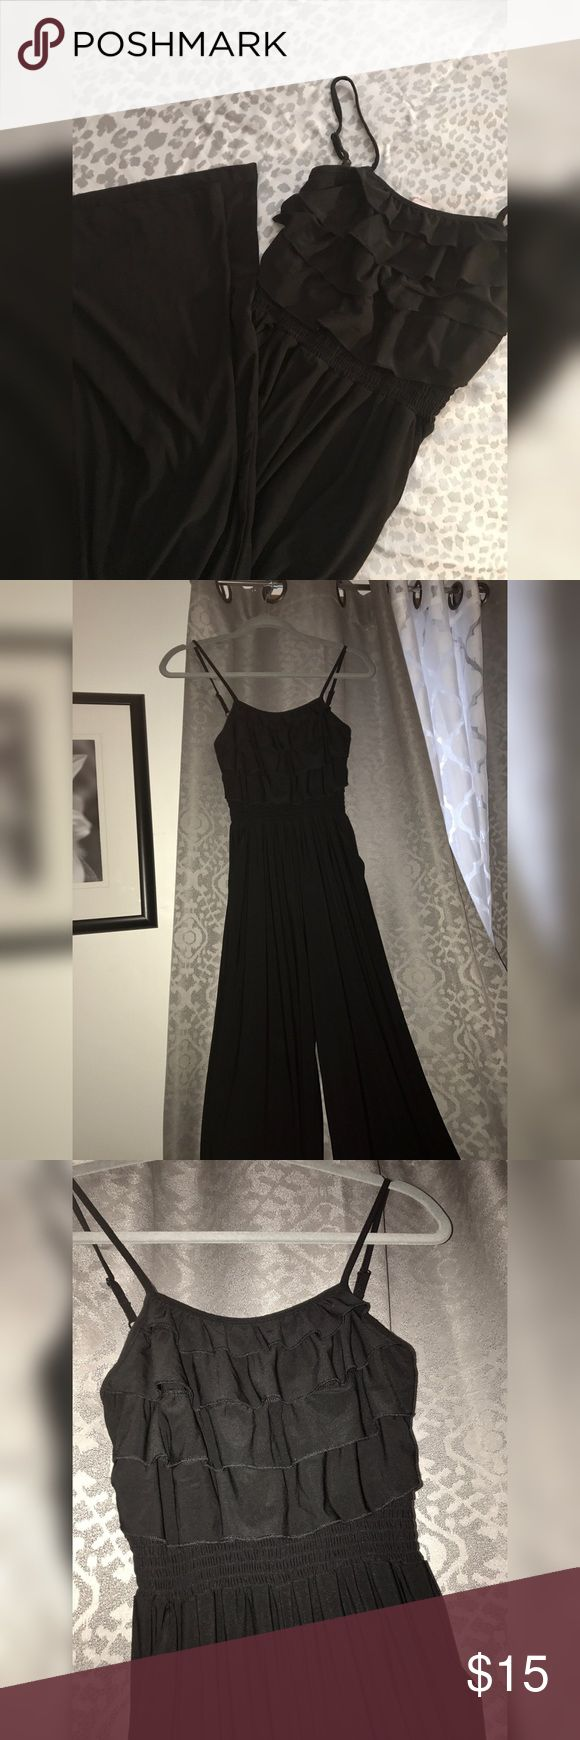 Black one piece wide leg jumpsuit! Black one piece wide leg jumpsuit with ruffle detail at the top! Never worn! NWT❕Size: Small Stretchy & silky material I'd say could fit a size S/M too! Pants Jumpsuits & Rompers